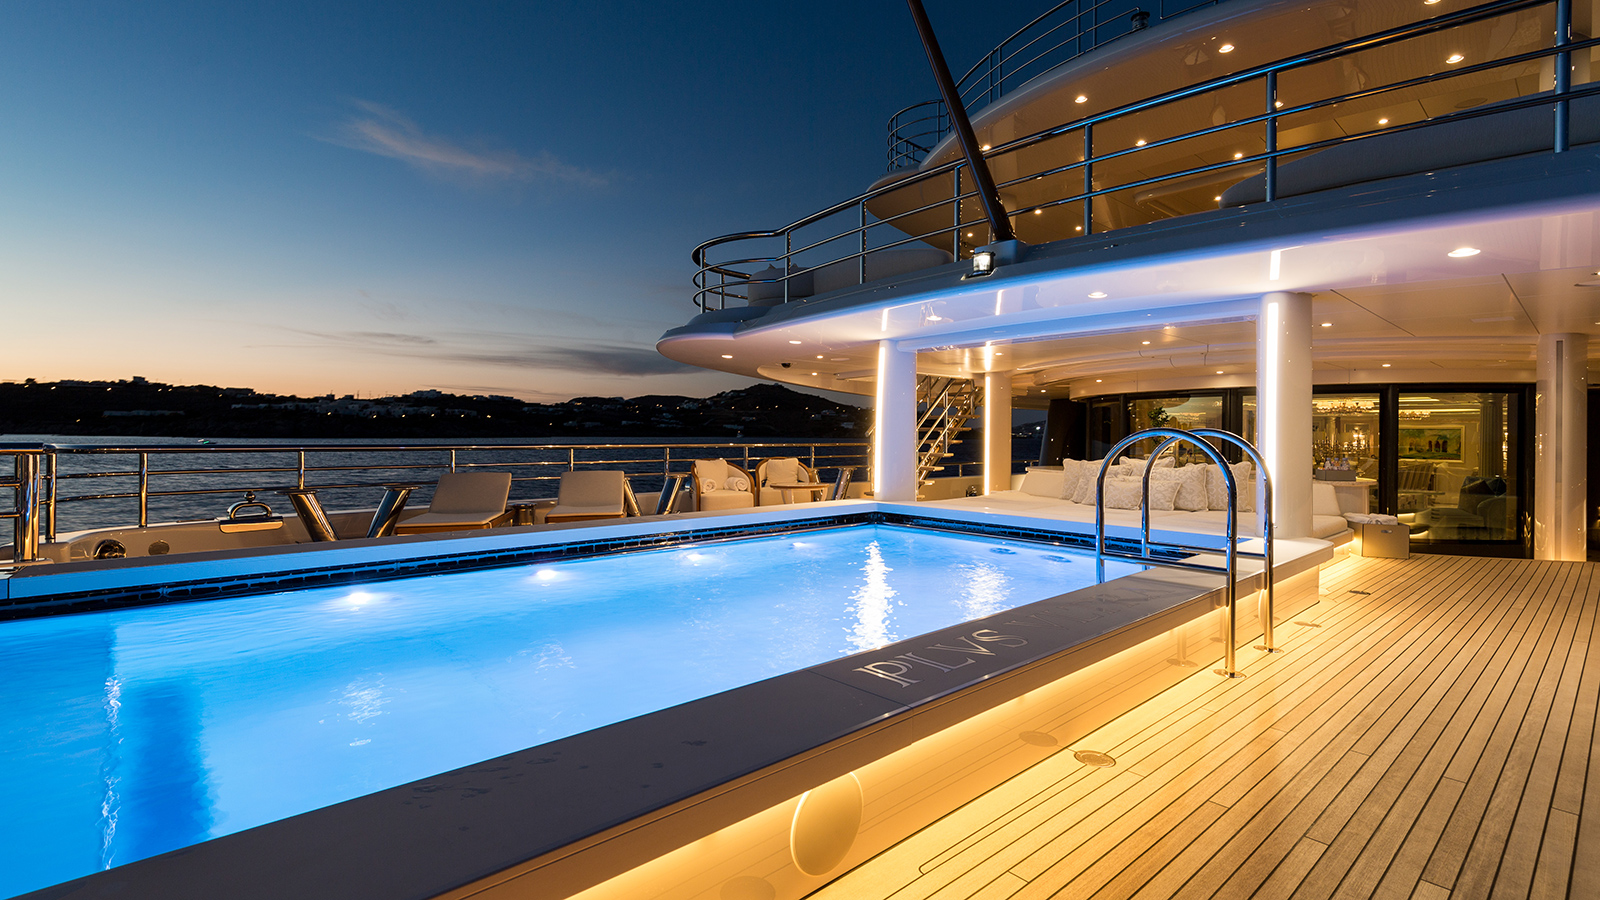 the-pool-of-the-amels-super-yacht-plvs-vltra